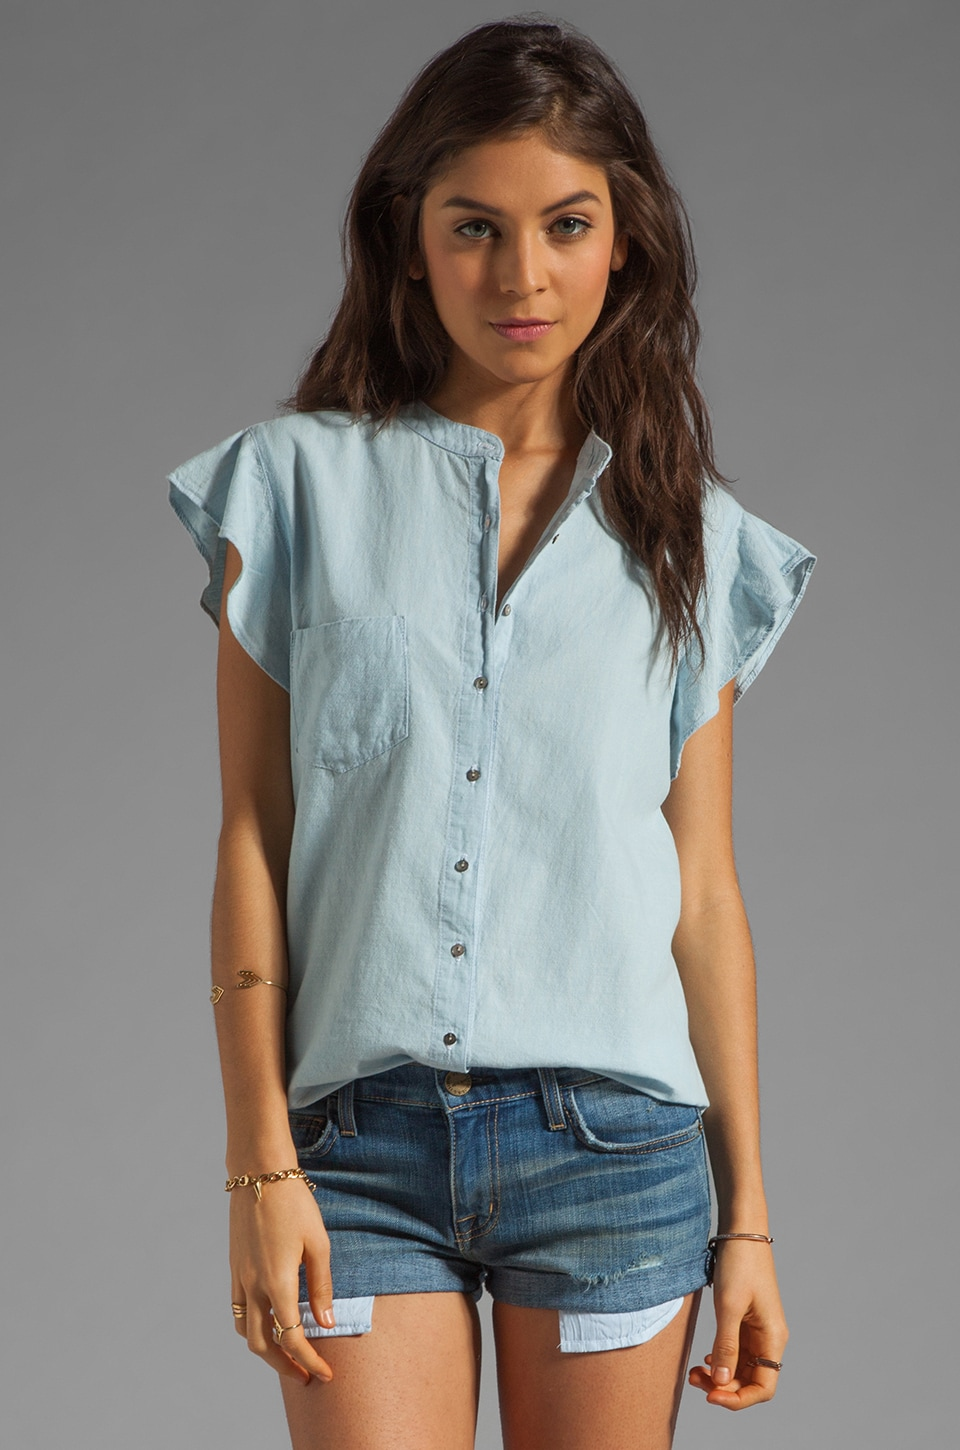 PJK Patterson J. Kincaid x the man repeller Pixie Ruffle Blouse in Chambray